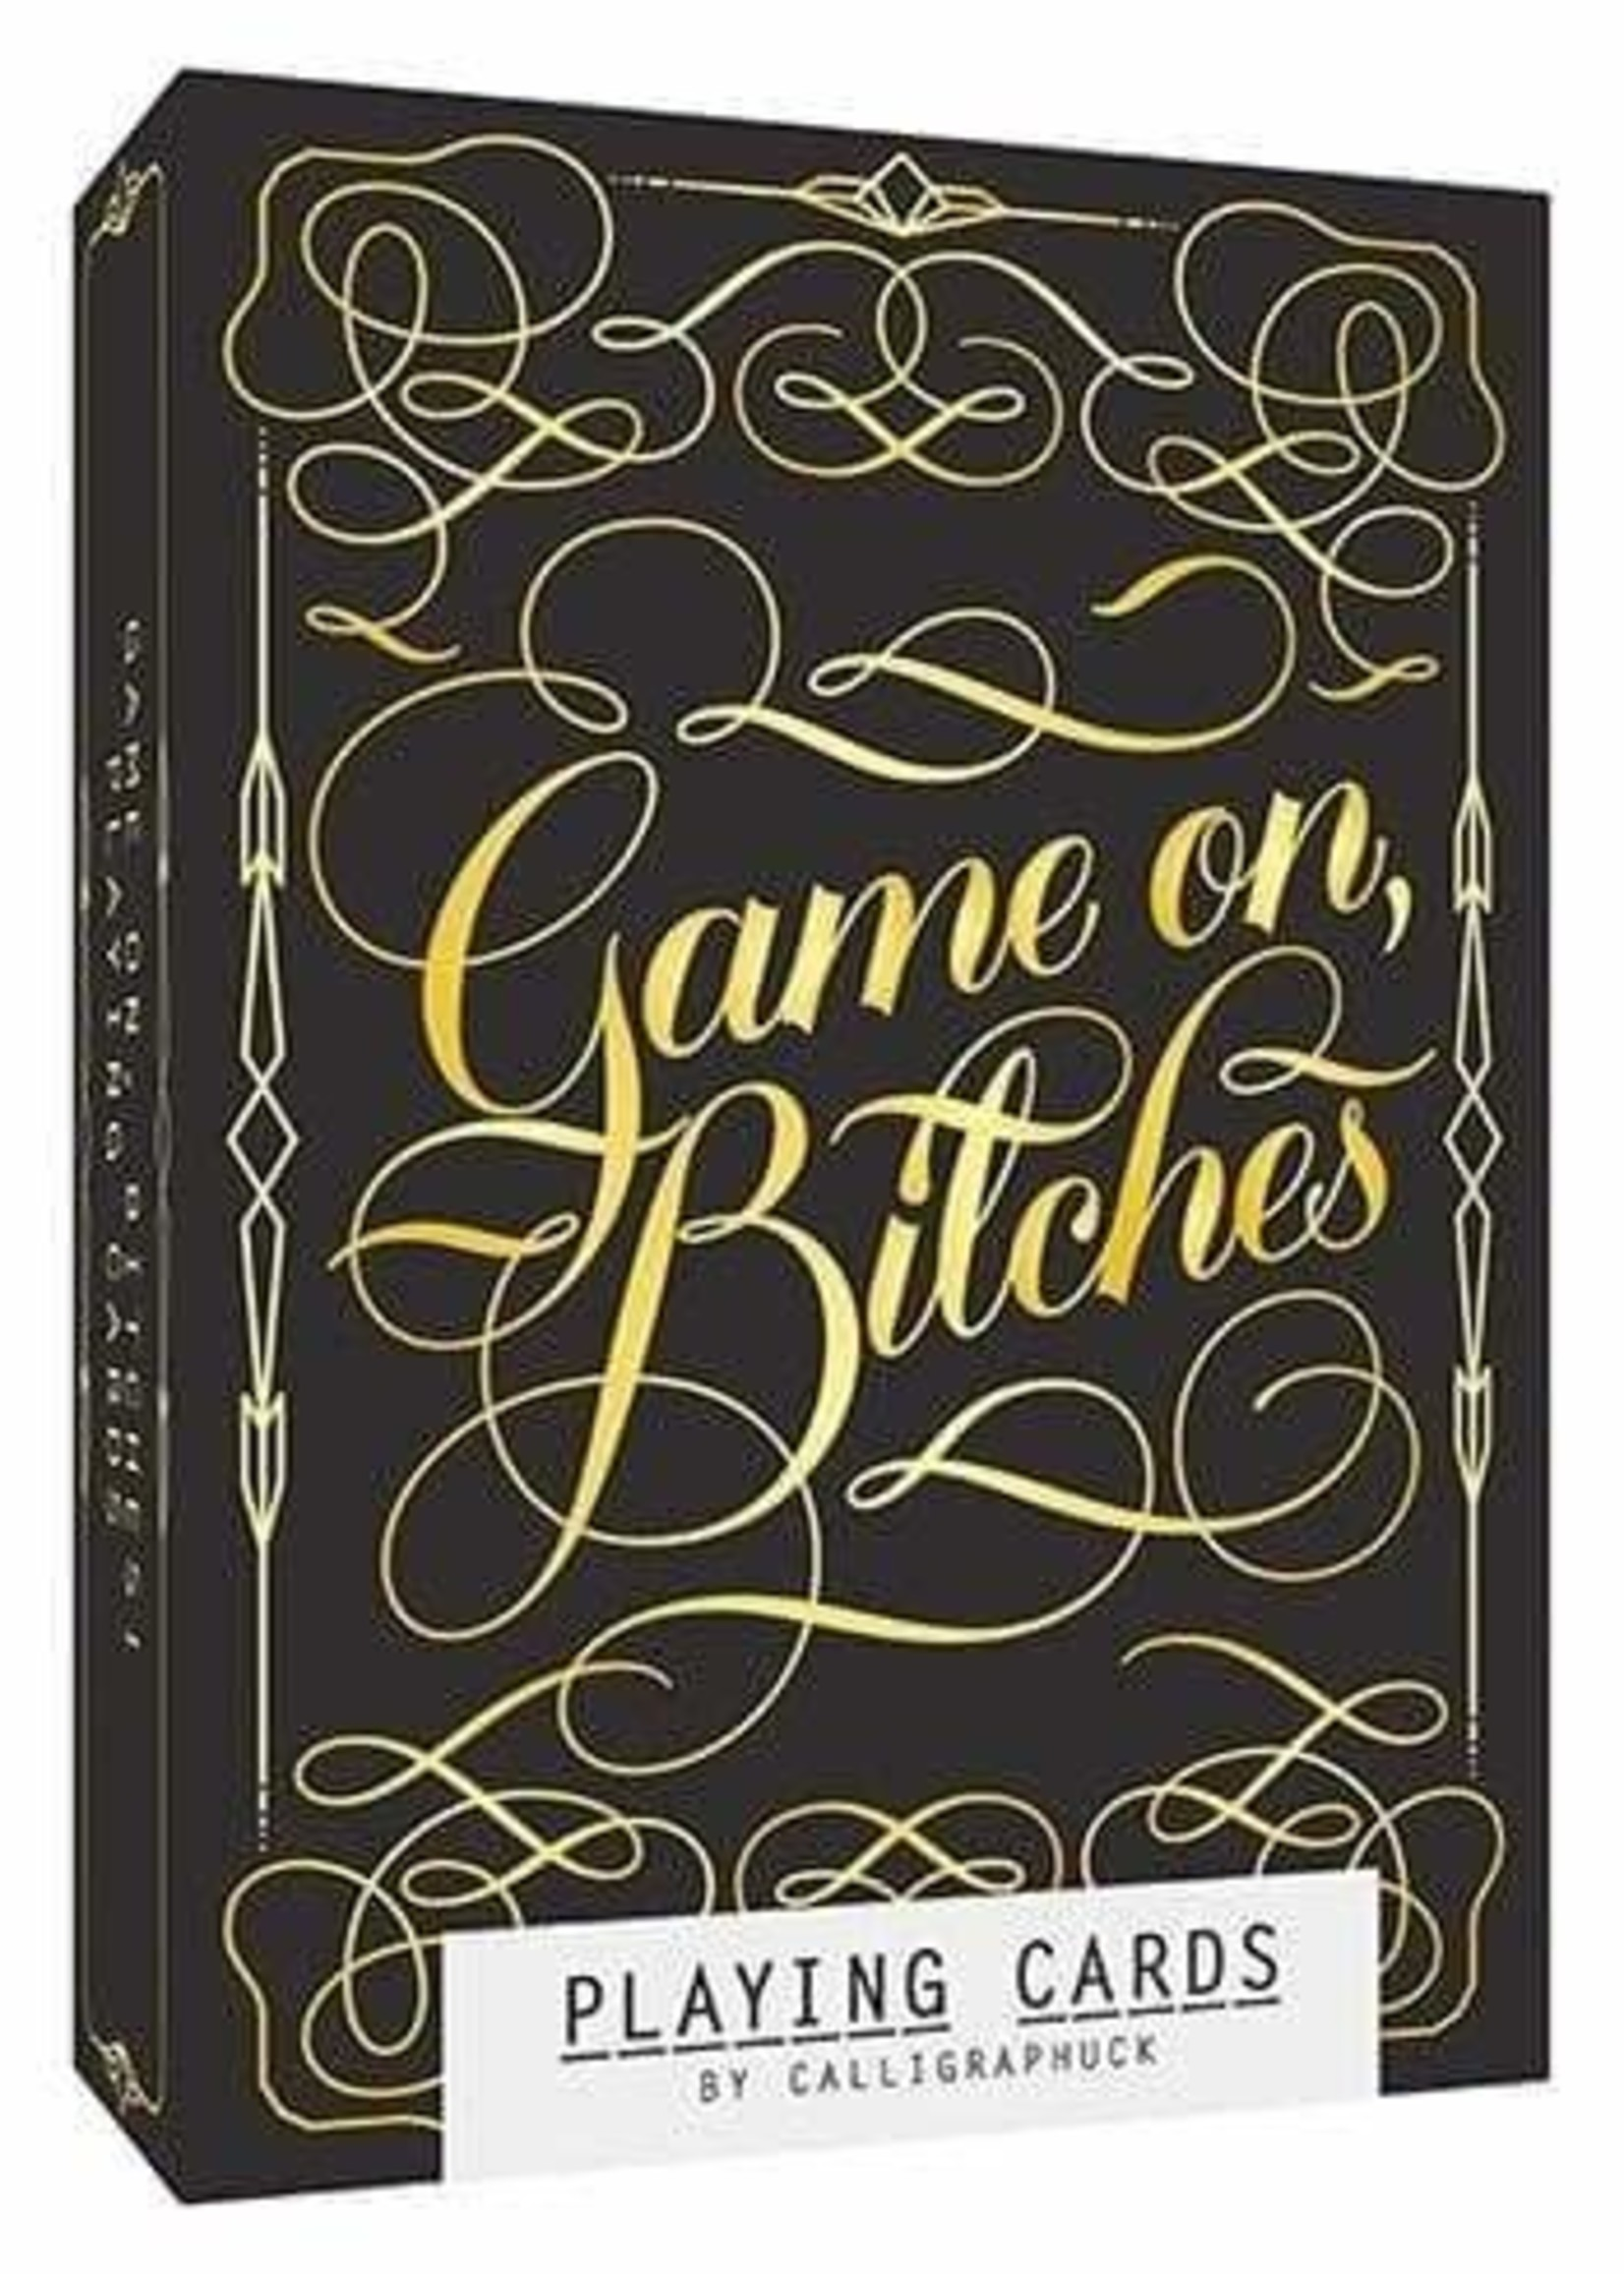 Game On, Bitches Playing Cards by Calligraphuck